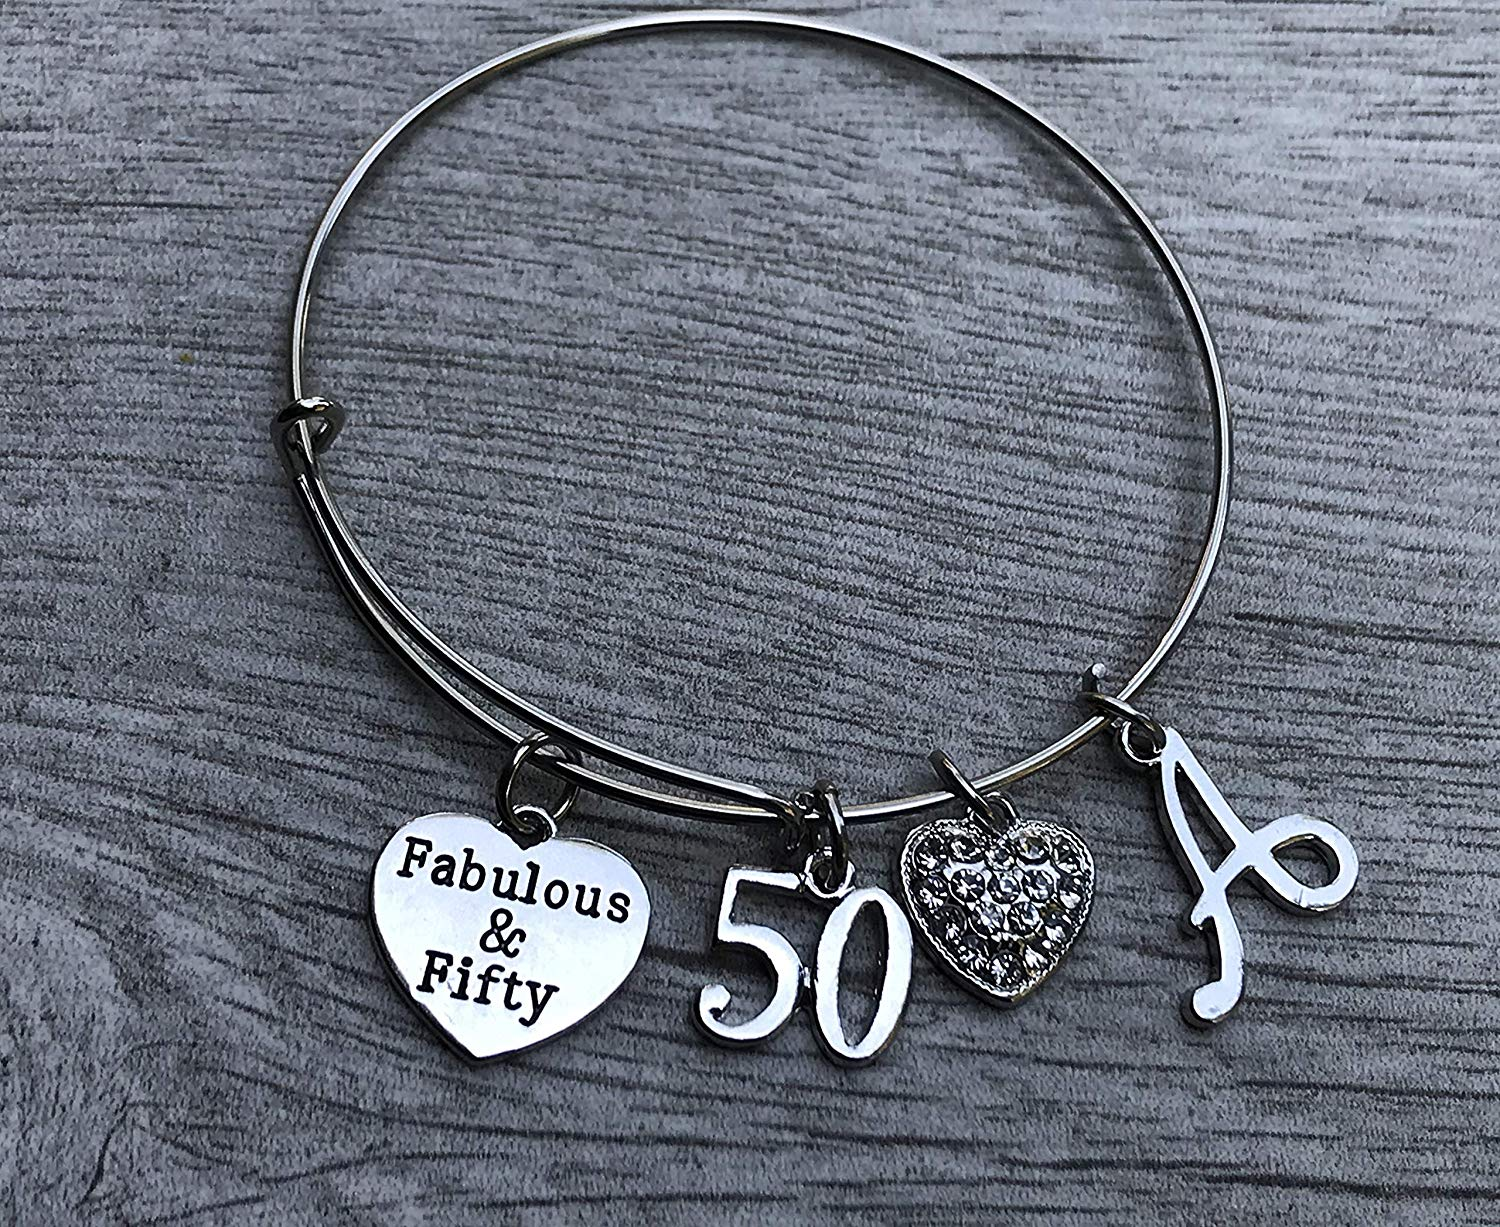 50th Birthday Bangle Bracelet with Letter Charm, 50th Birthday Gifts for Women, Fabulous and Fifty Bracelet. 50th Bday Gifts for Her